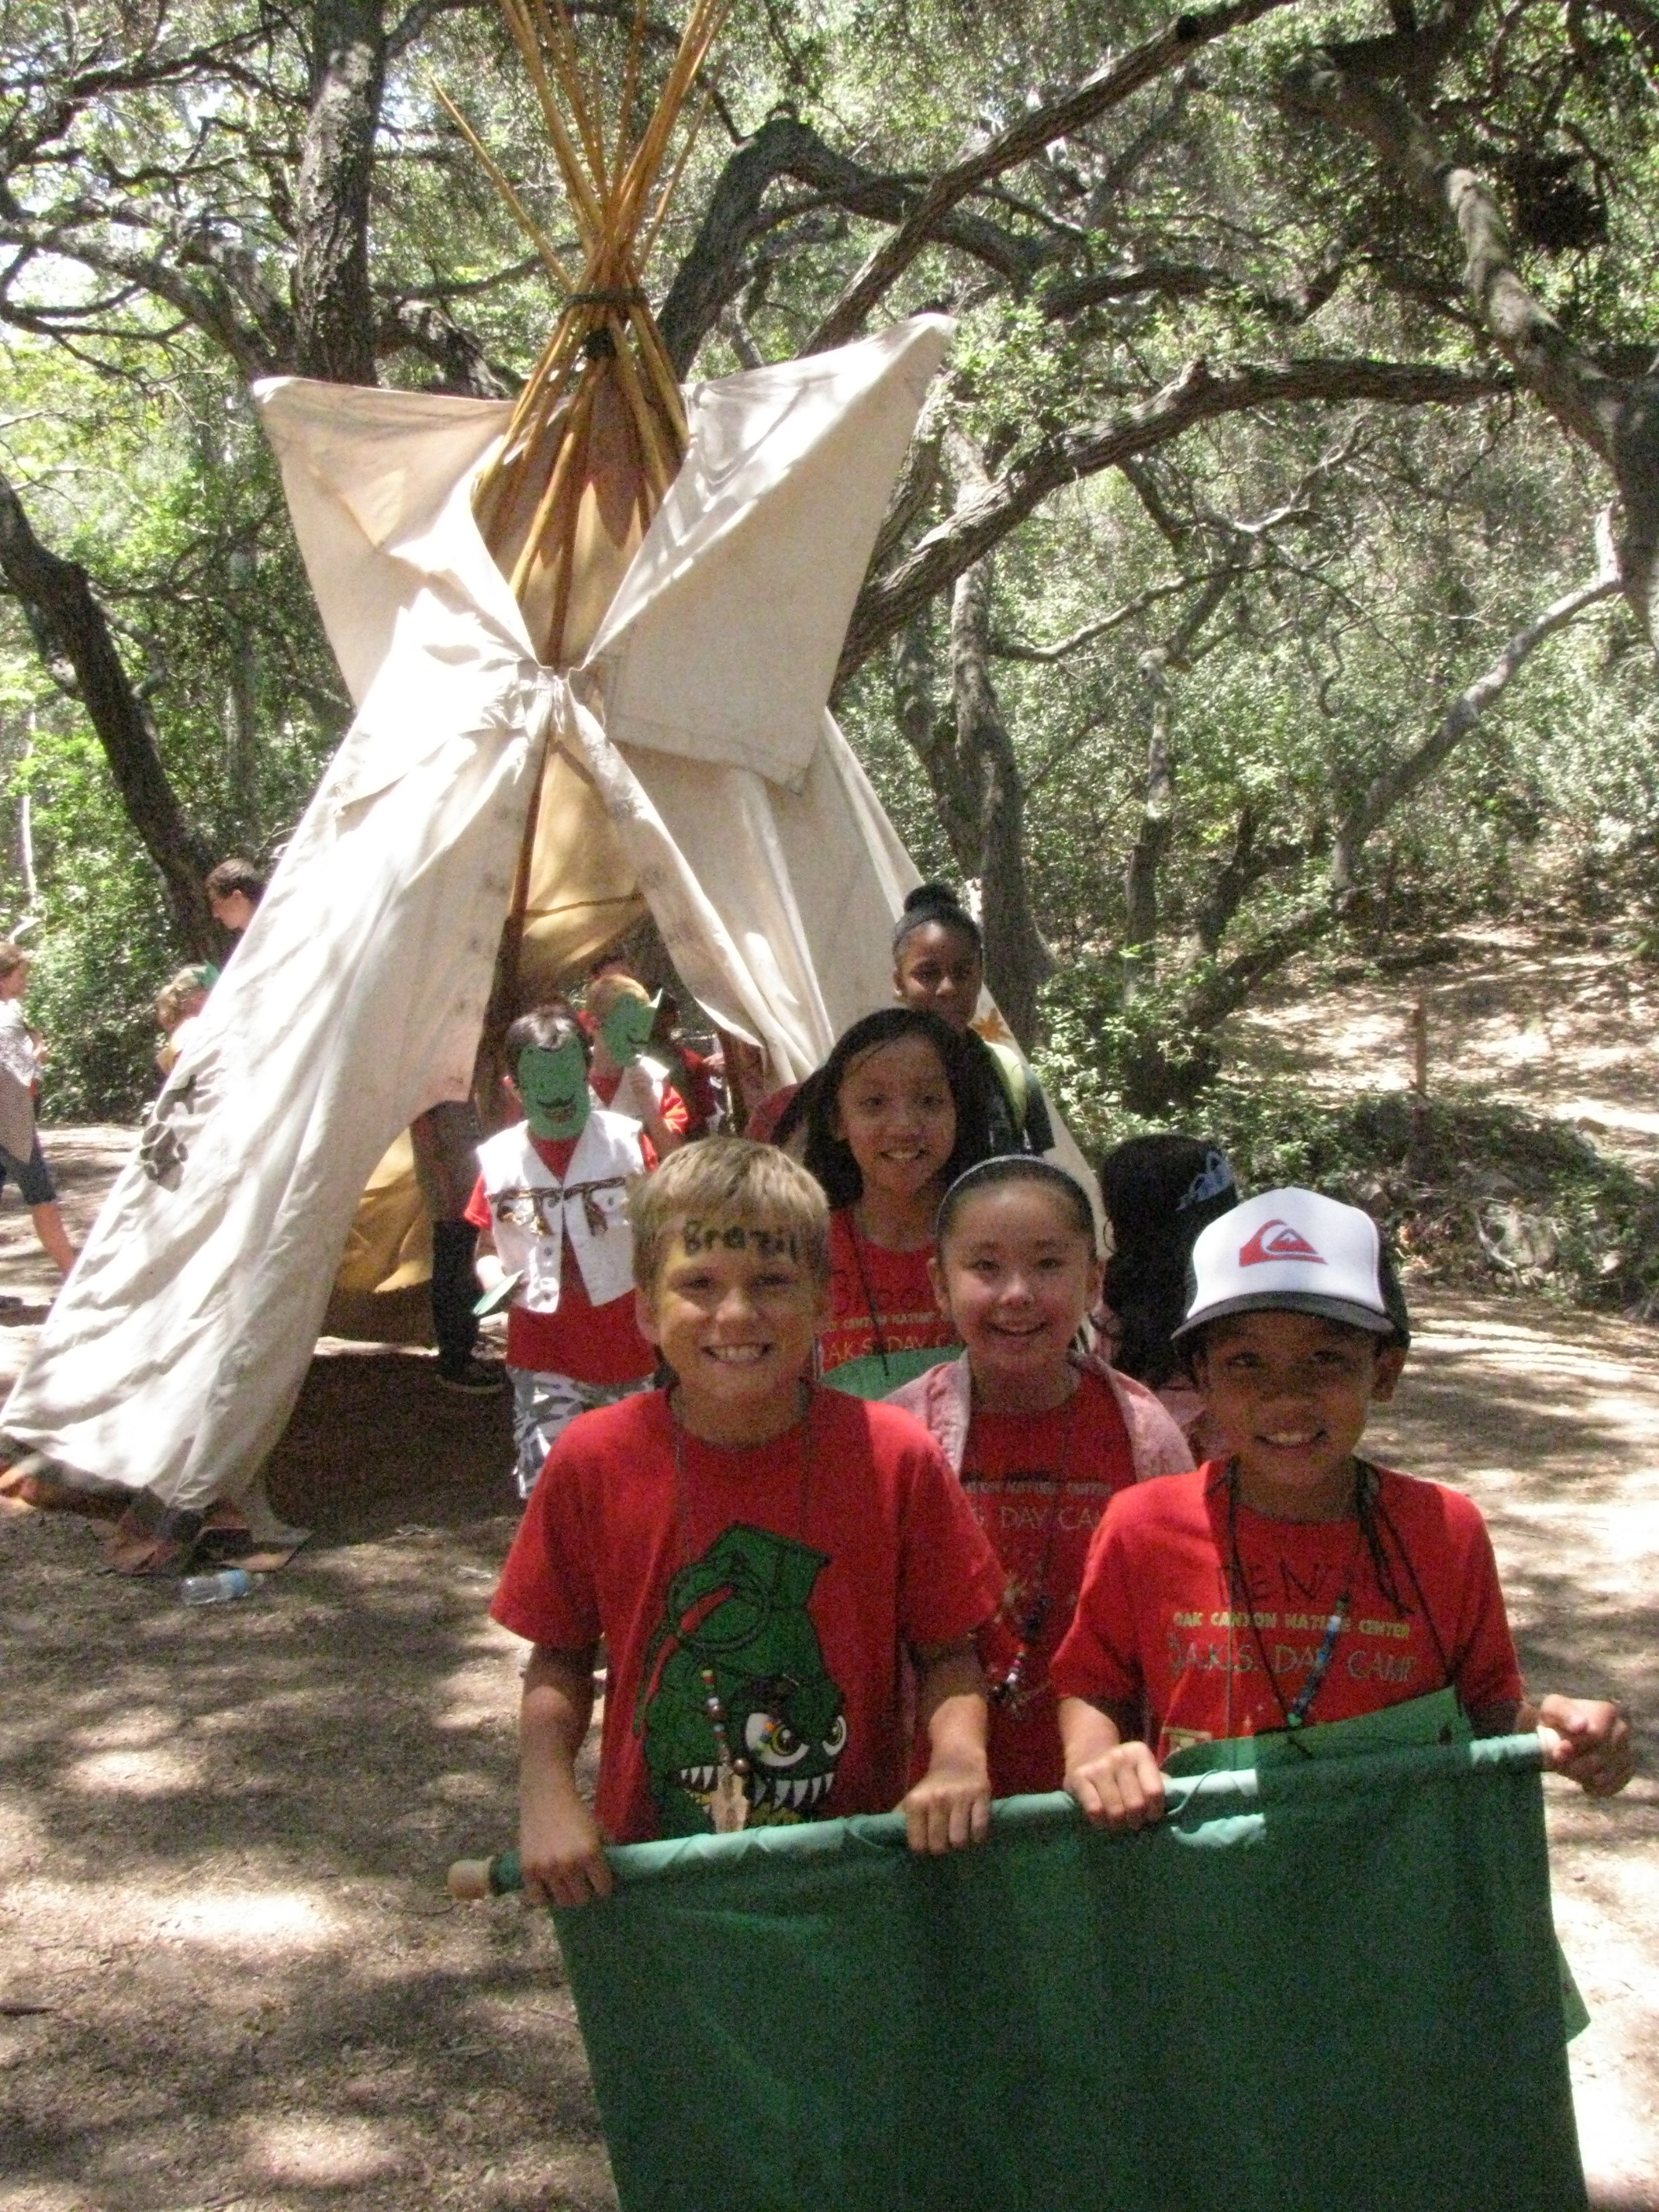 Kids hold a banner in front of a teepee